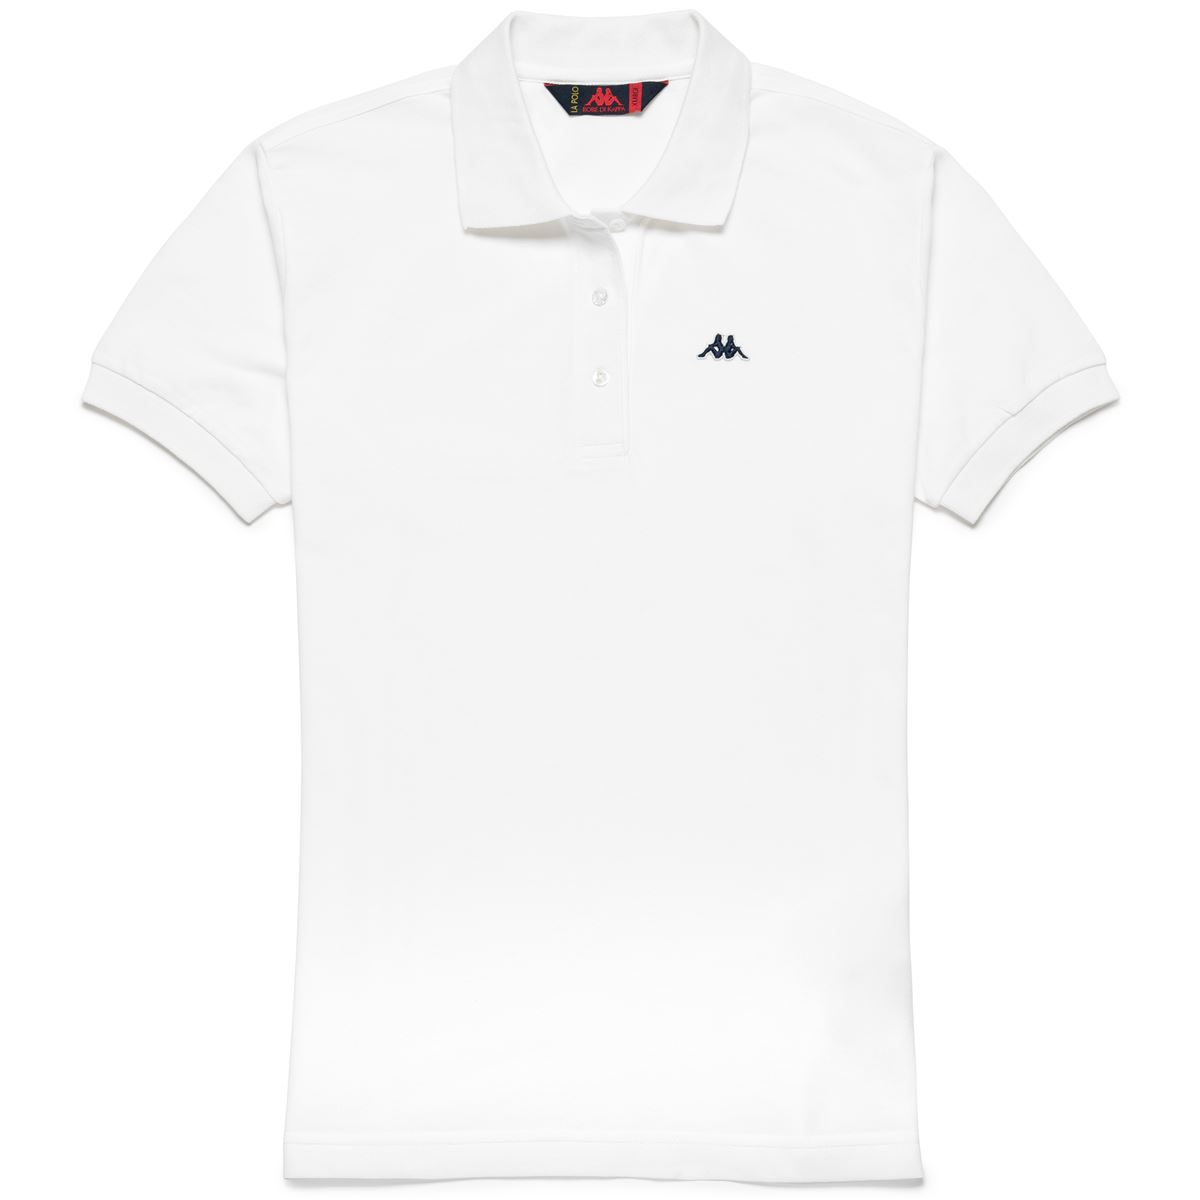 Robe di Kappa LA POLO ROBE DI KAPPA GOLOVIN LIGHT Woman Classic Polo